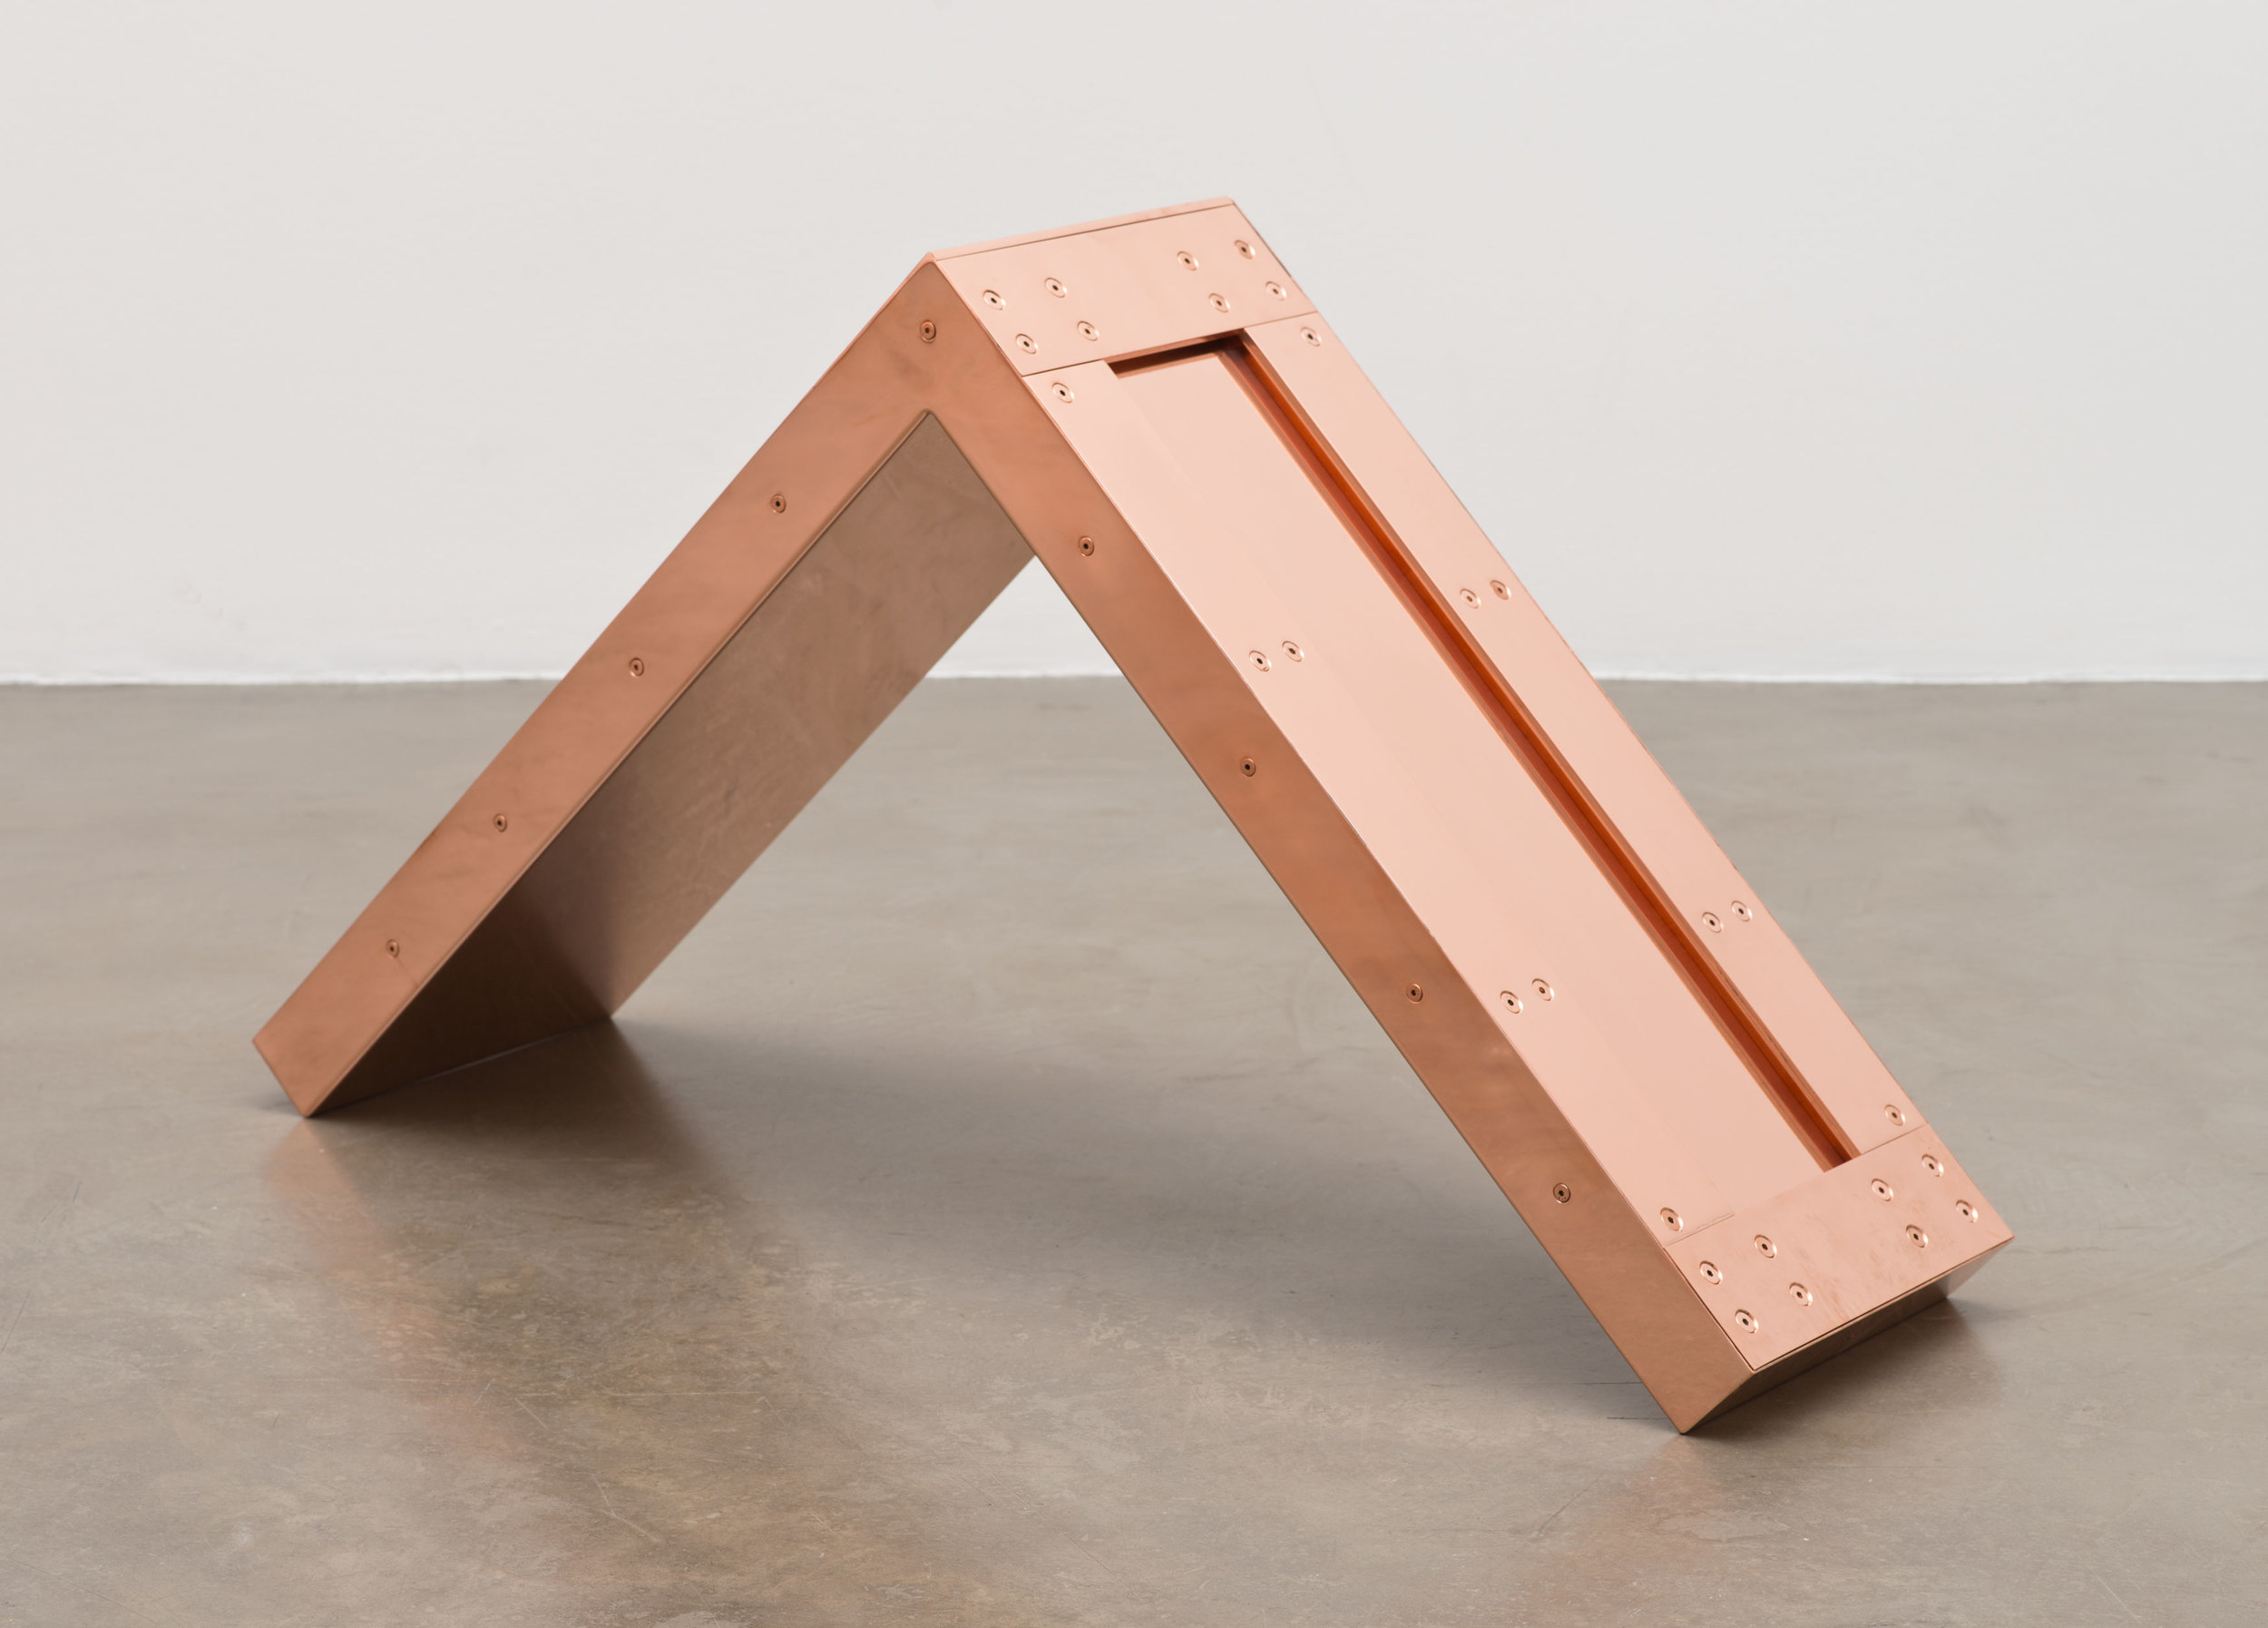 """Copper Surrogate (60"""" x 120"""" 48 ounce C11000 Copper Alloy, 90º Bend, 120""""Bisection, 10 Sections: November 30–December 1/December 7, 2015, Miami Beach, Florida)    2014–   Polished copper  11 1/2 x 30 x 30 inches"""